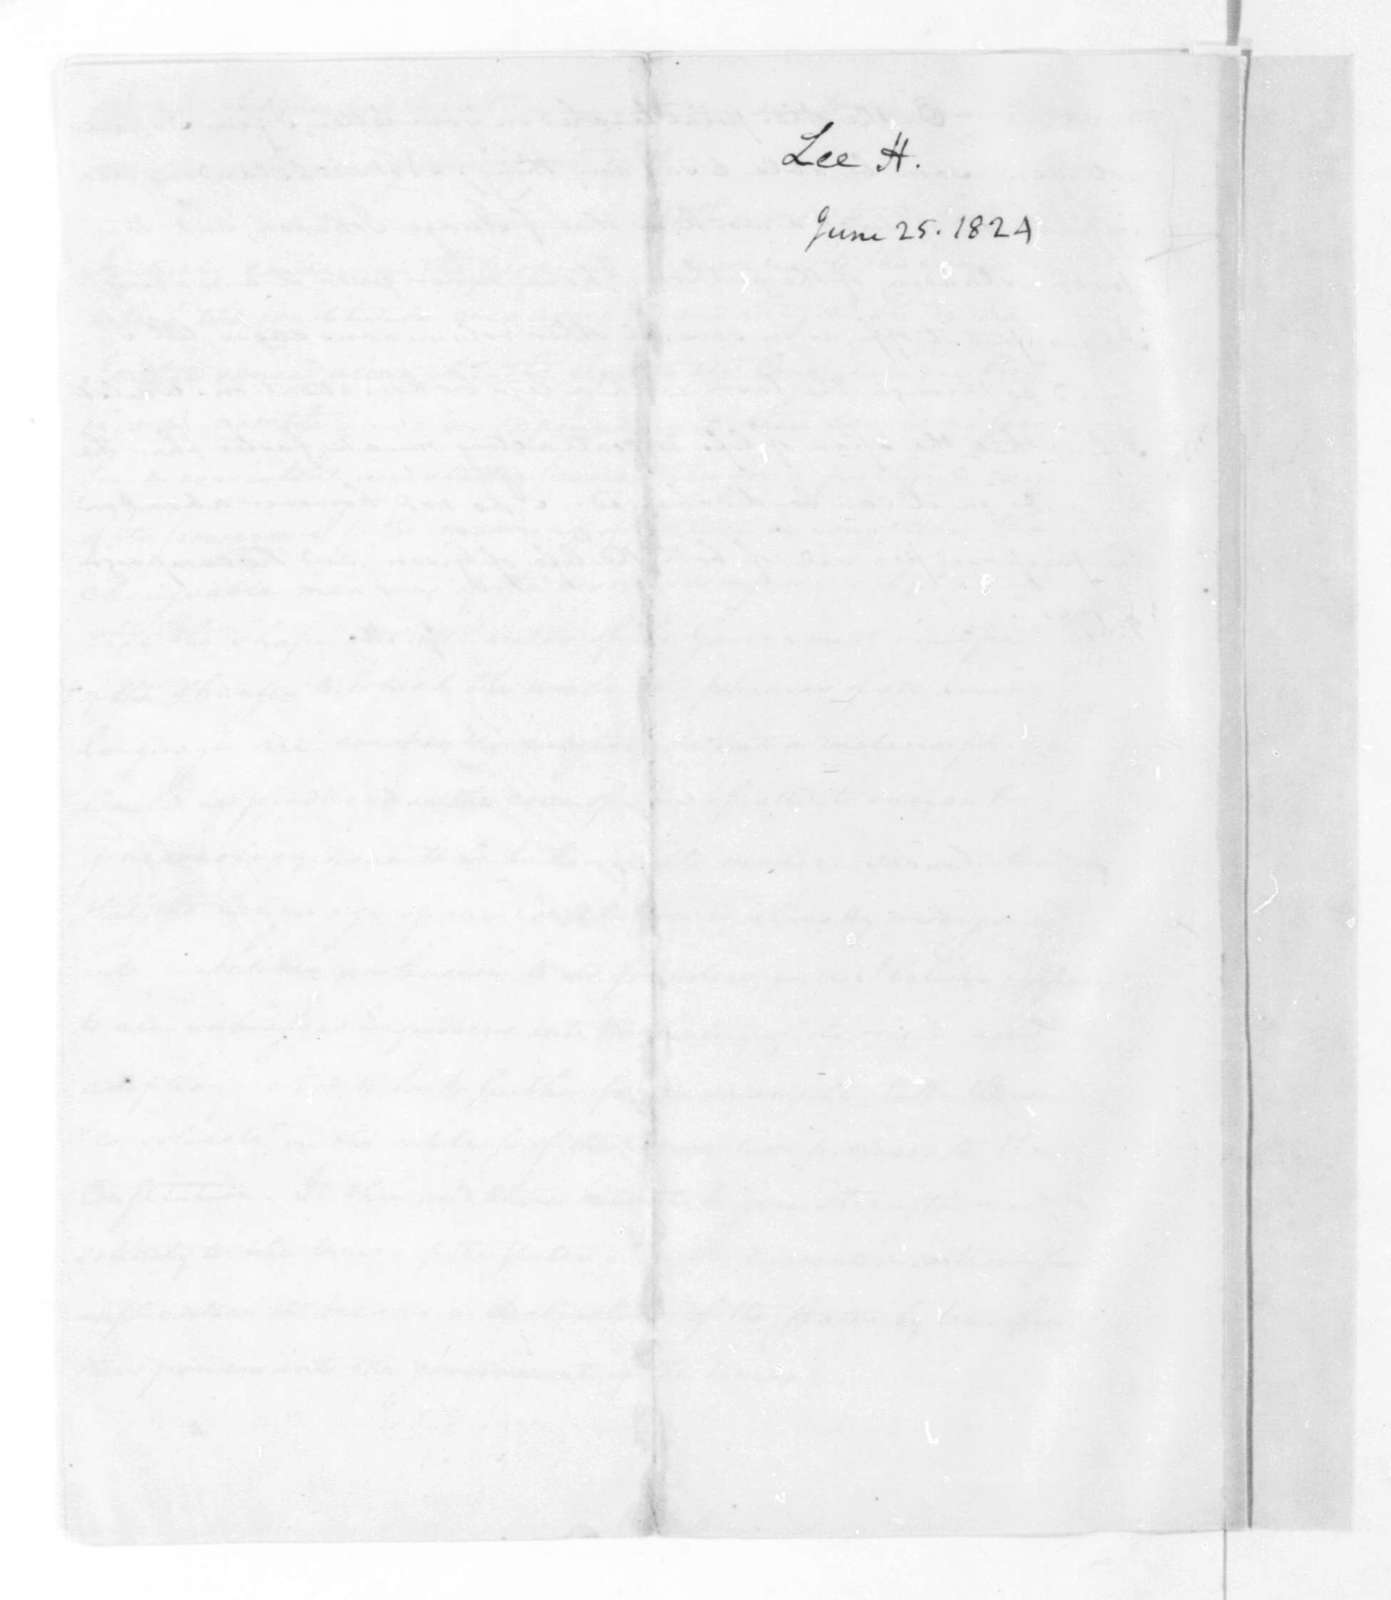 James Madison to Henry Lee, June 25, 1824.